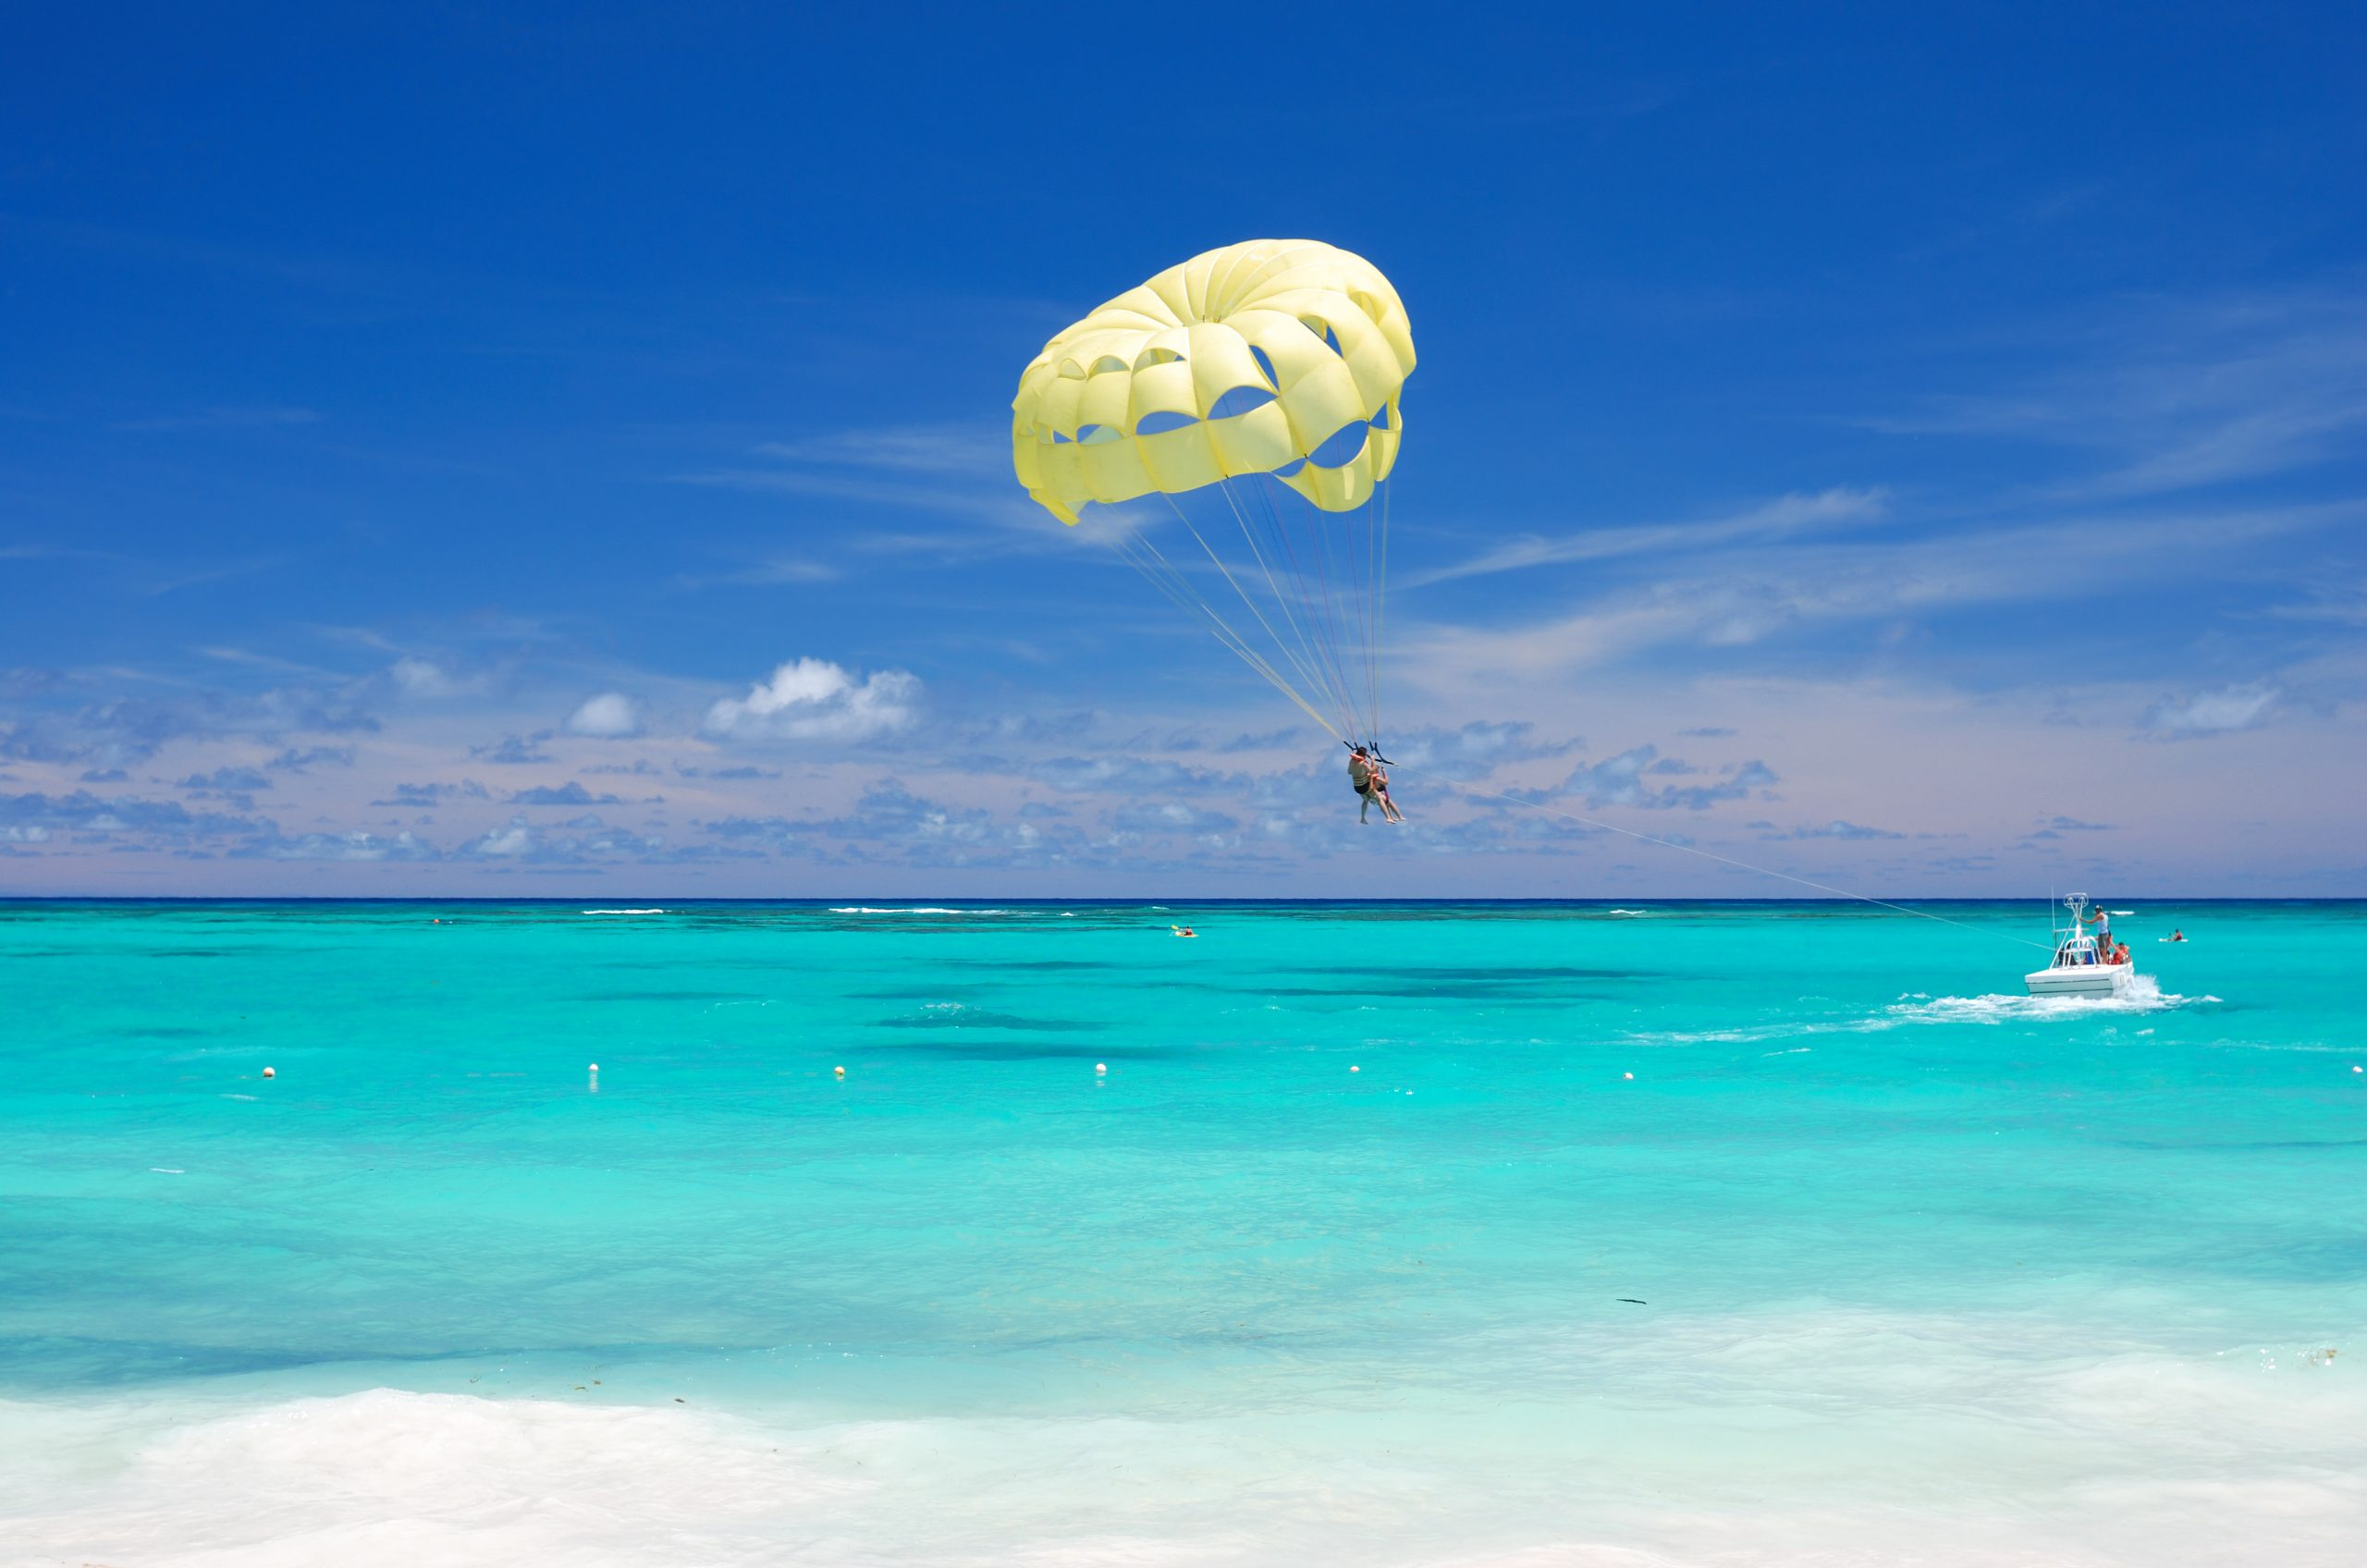 Parasailing at Round Hill Resort Jamaica